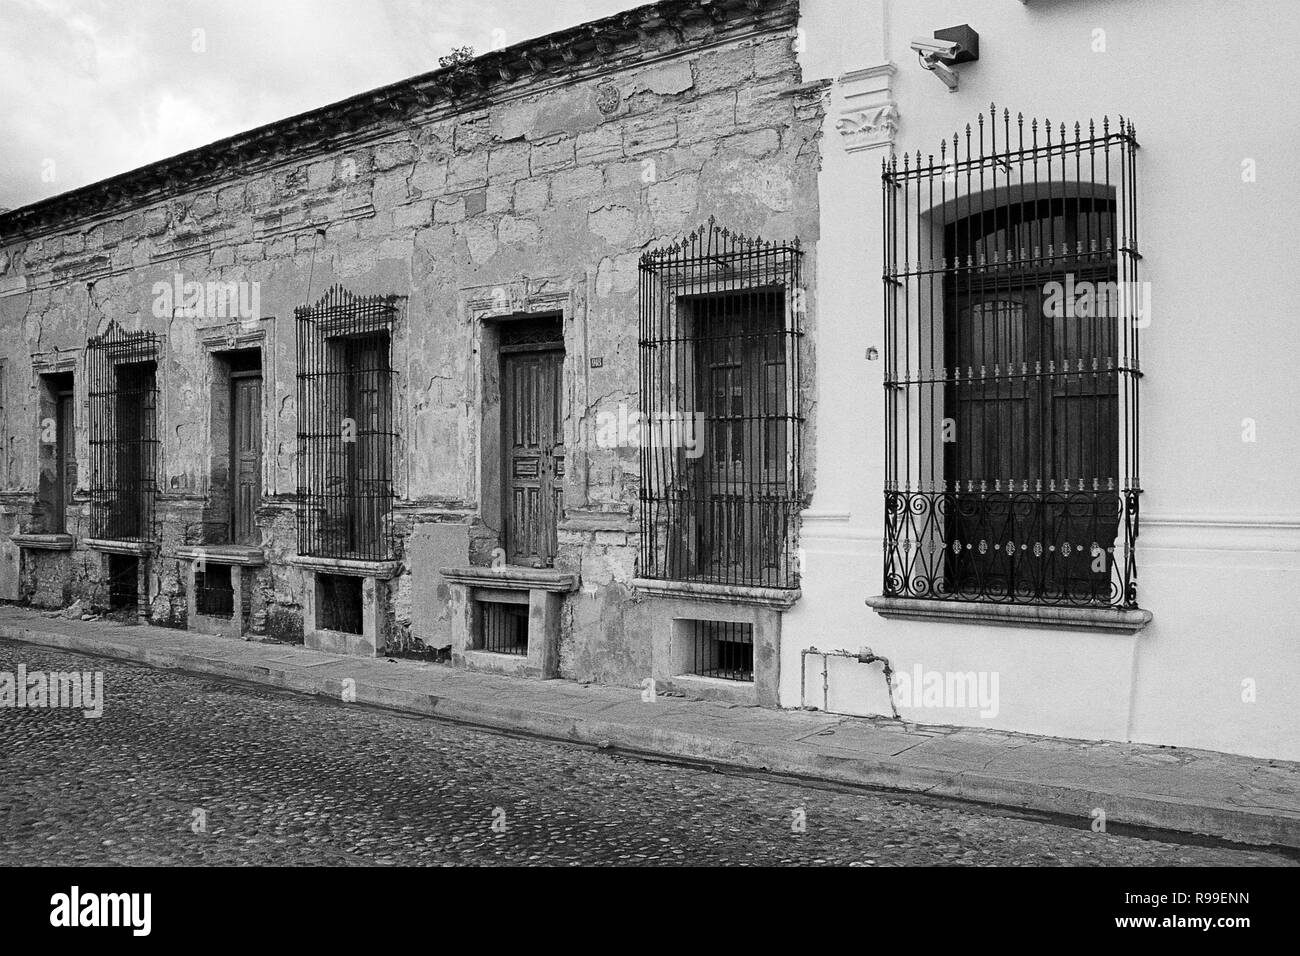 MONTERREY, NL/MEXICO - NOV 10, 2003: Facade of old houses at downtown, nearby the Macroplaza Stock Photo